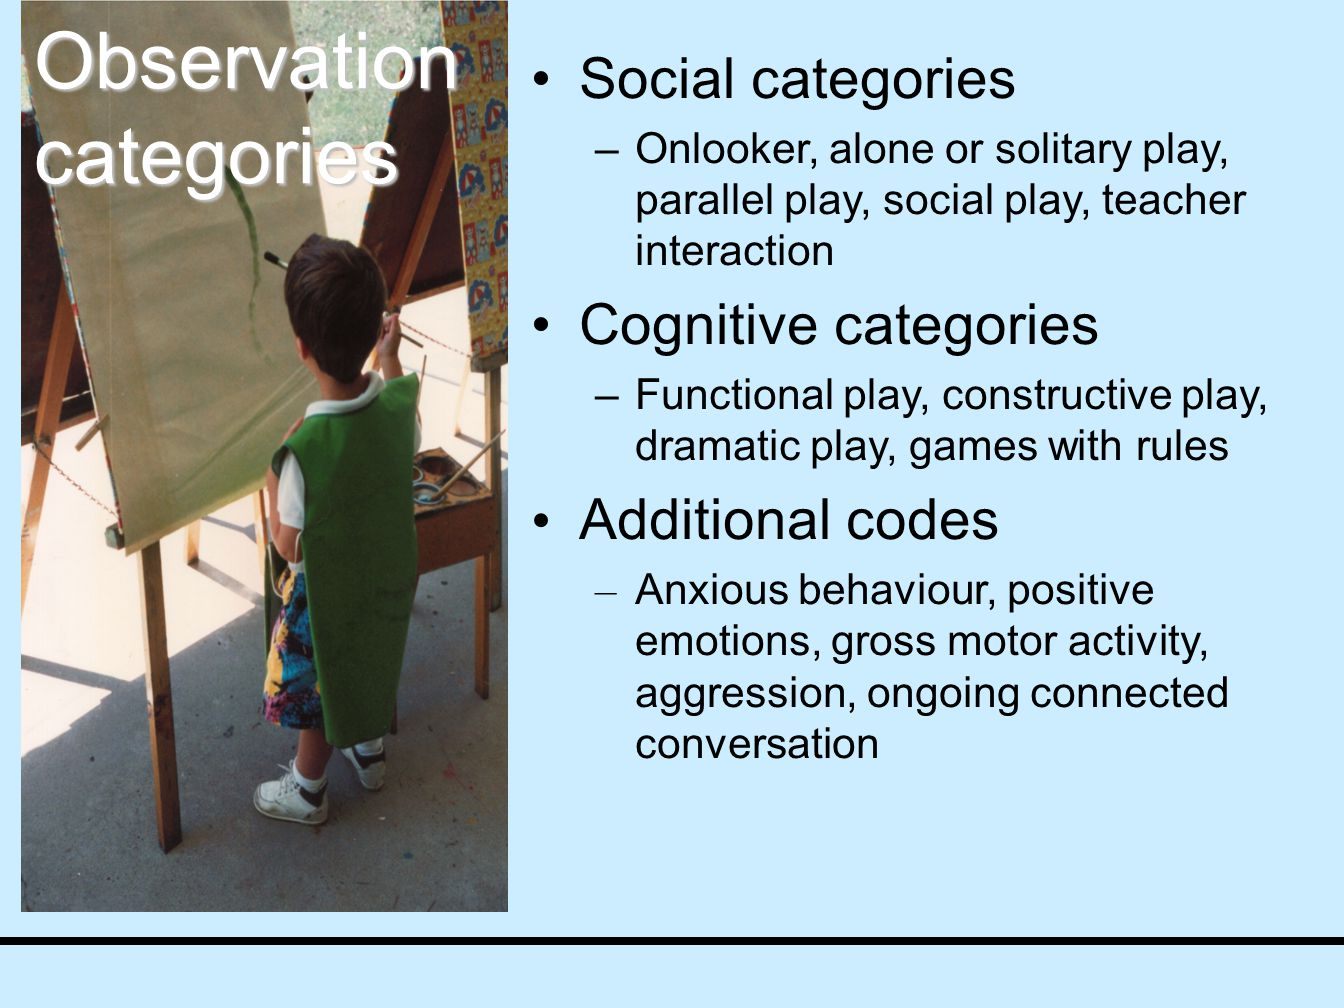 Social categories –Onlooker, alone or solitary play, parallel play, social play, teacher interaction Cognitive categories –Functional play, constructive play, dramatic play, games with rules Additional codes – Anxious behaviour, positive emotions, gross motor activity, aggression, ongoing connected conversation Observation categories